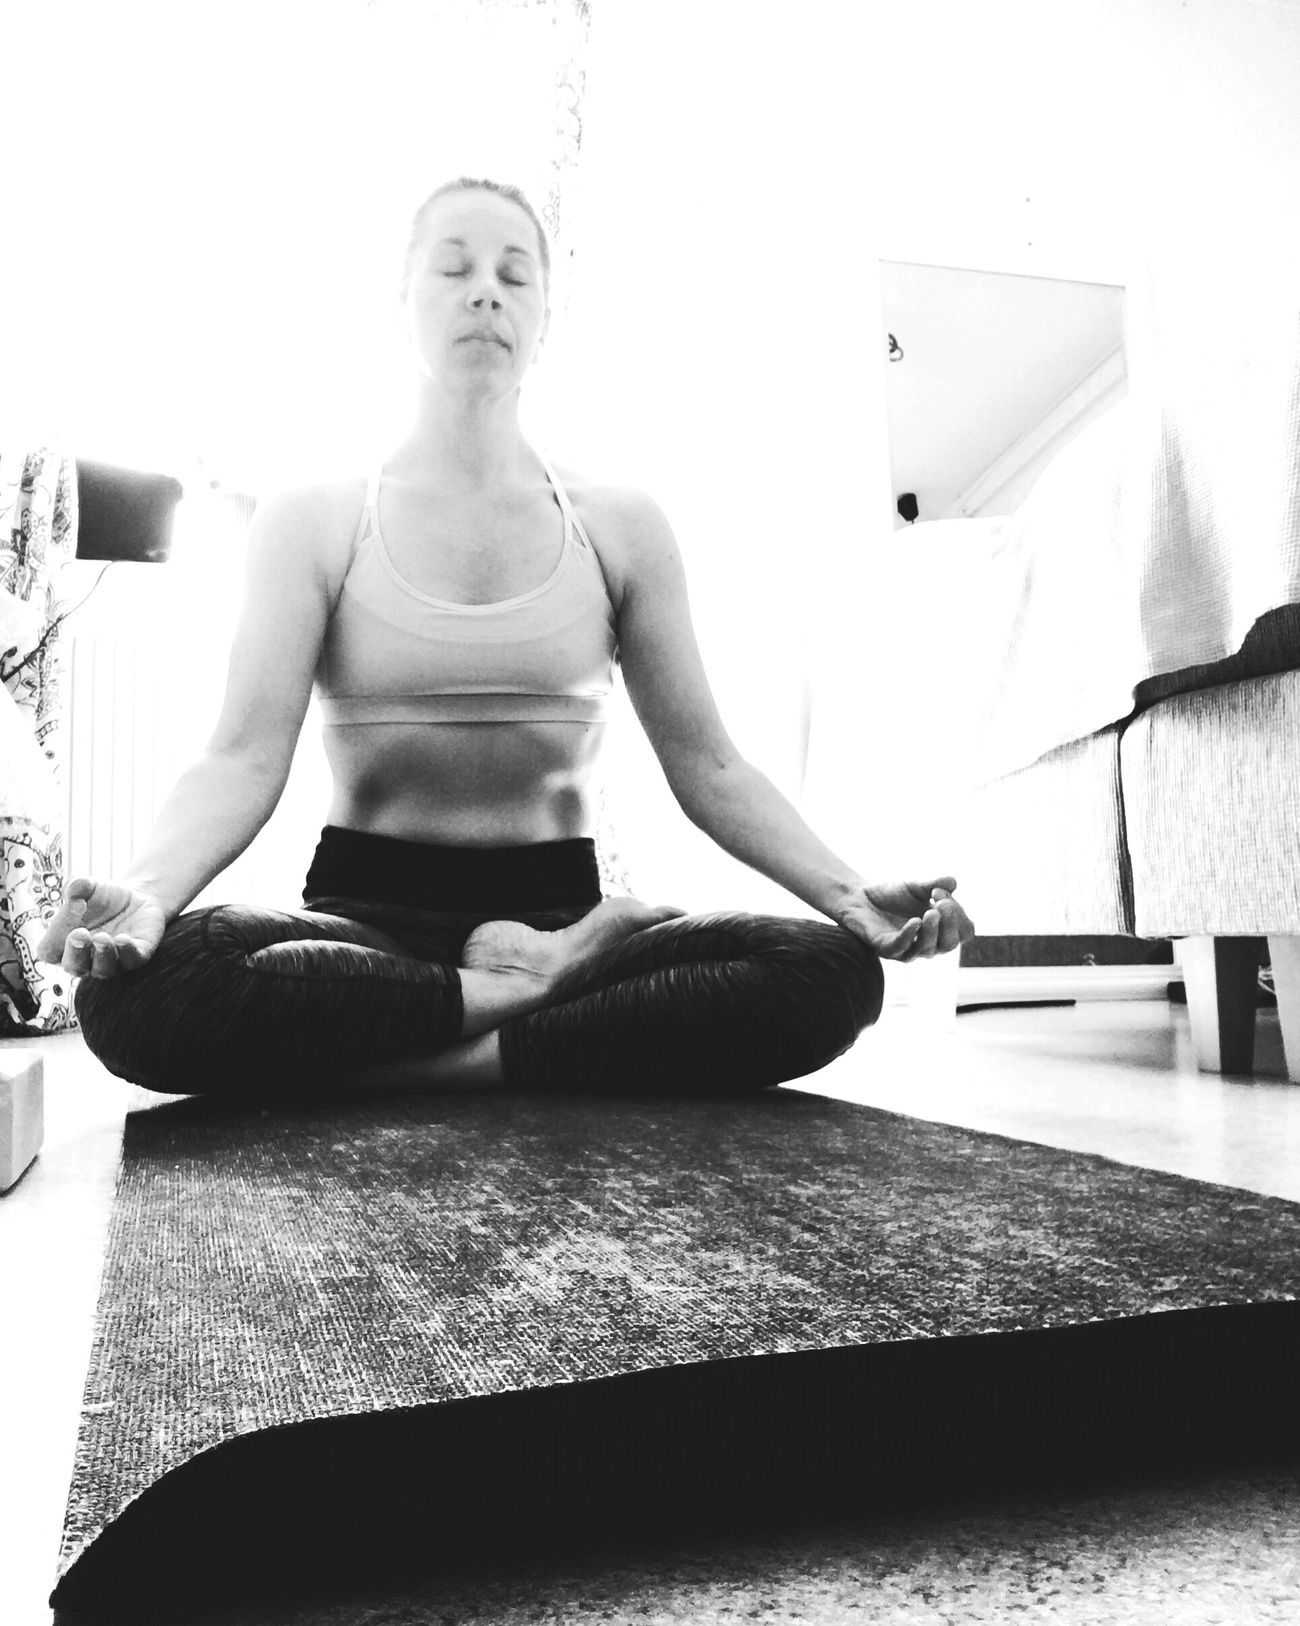 Yoga for your body and soul 🕉 Yoga Healthy Lifestyle Exercising Lifestyles Practicing Blond Hair Sitting Real People Women Self Potrait Raw Beauty Sweden Hello World Fitover40 Yoga Practice Todays Hot Look Fitness Motivation ! Yogini